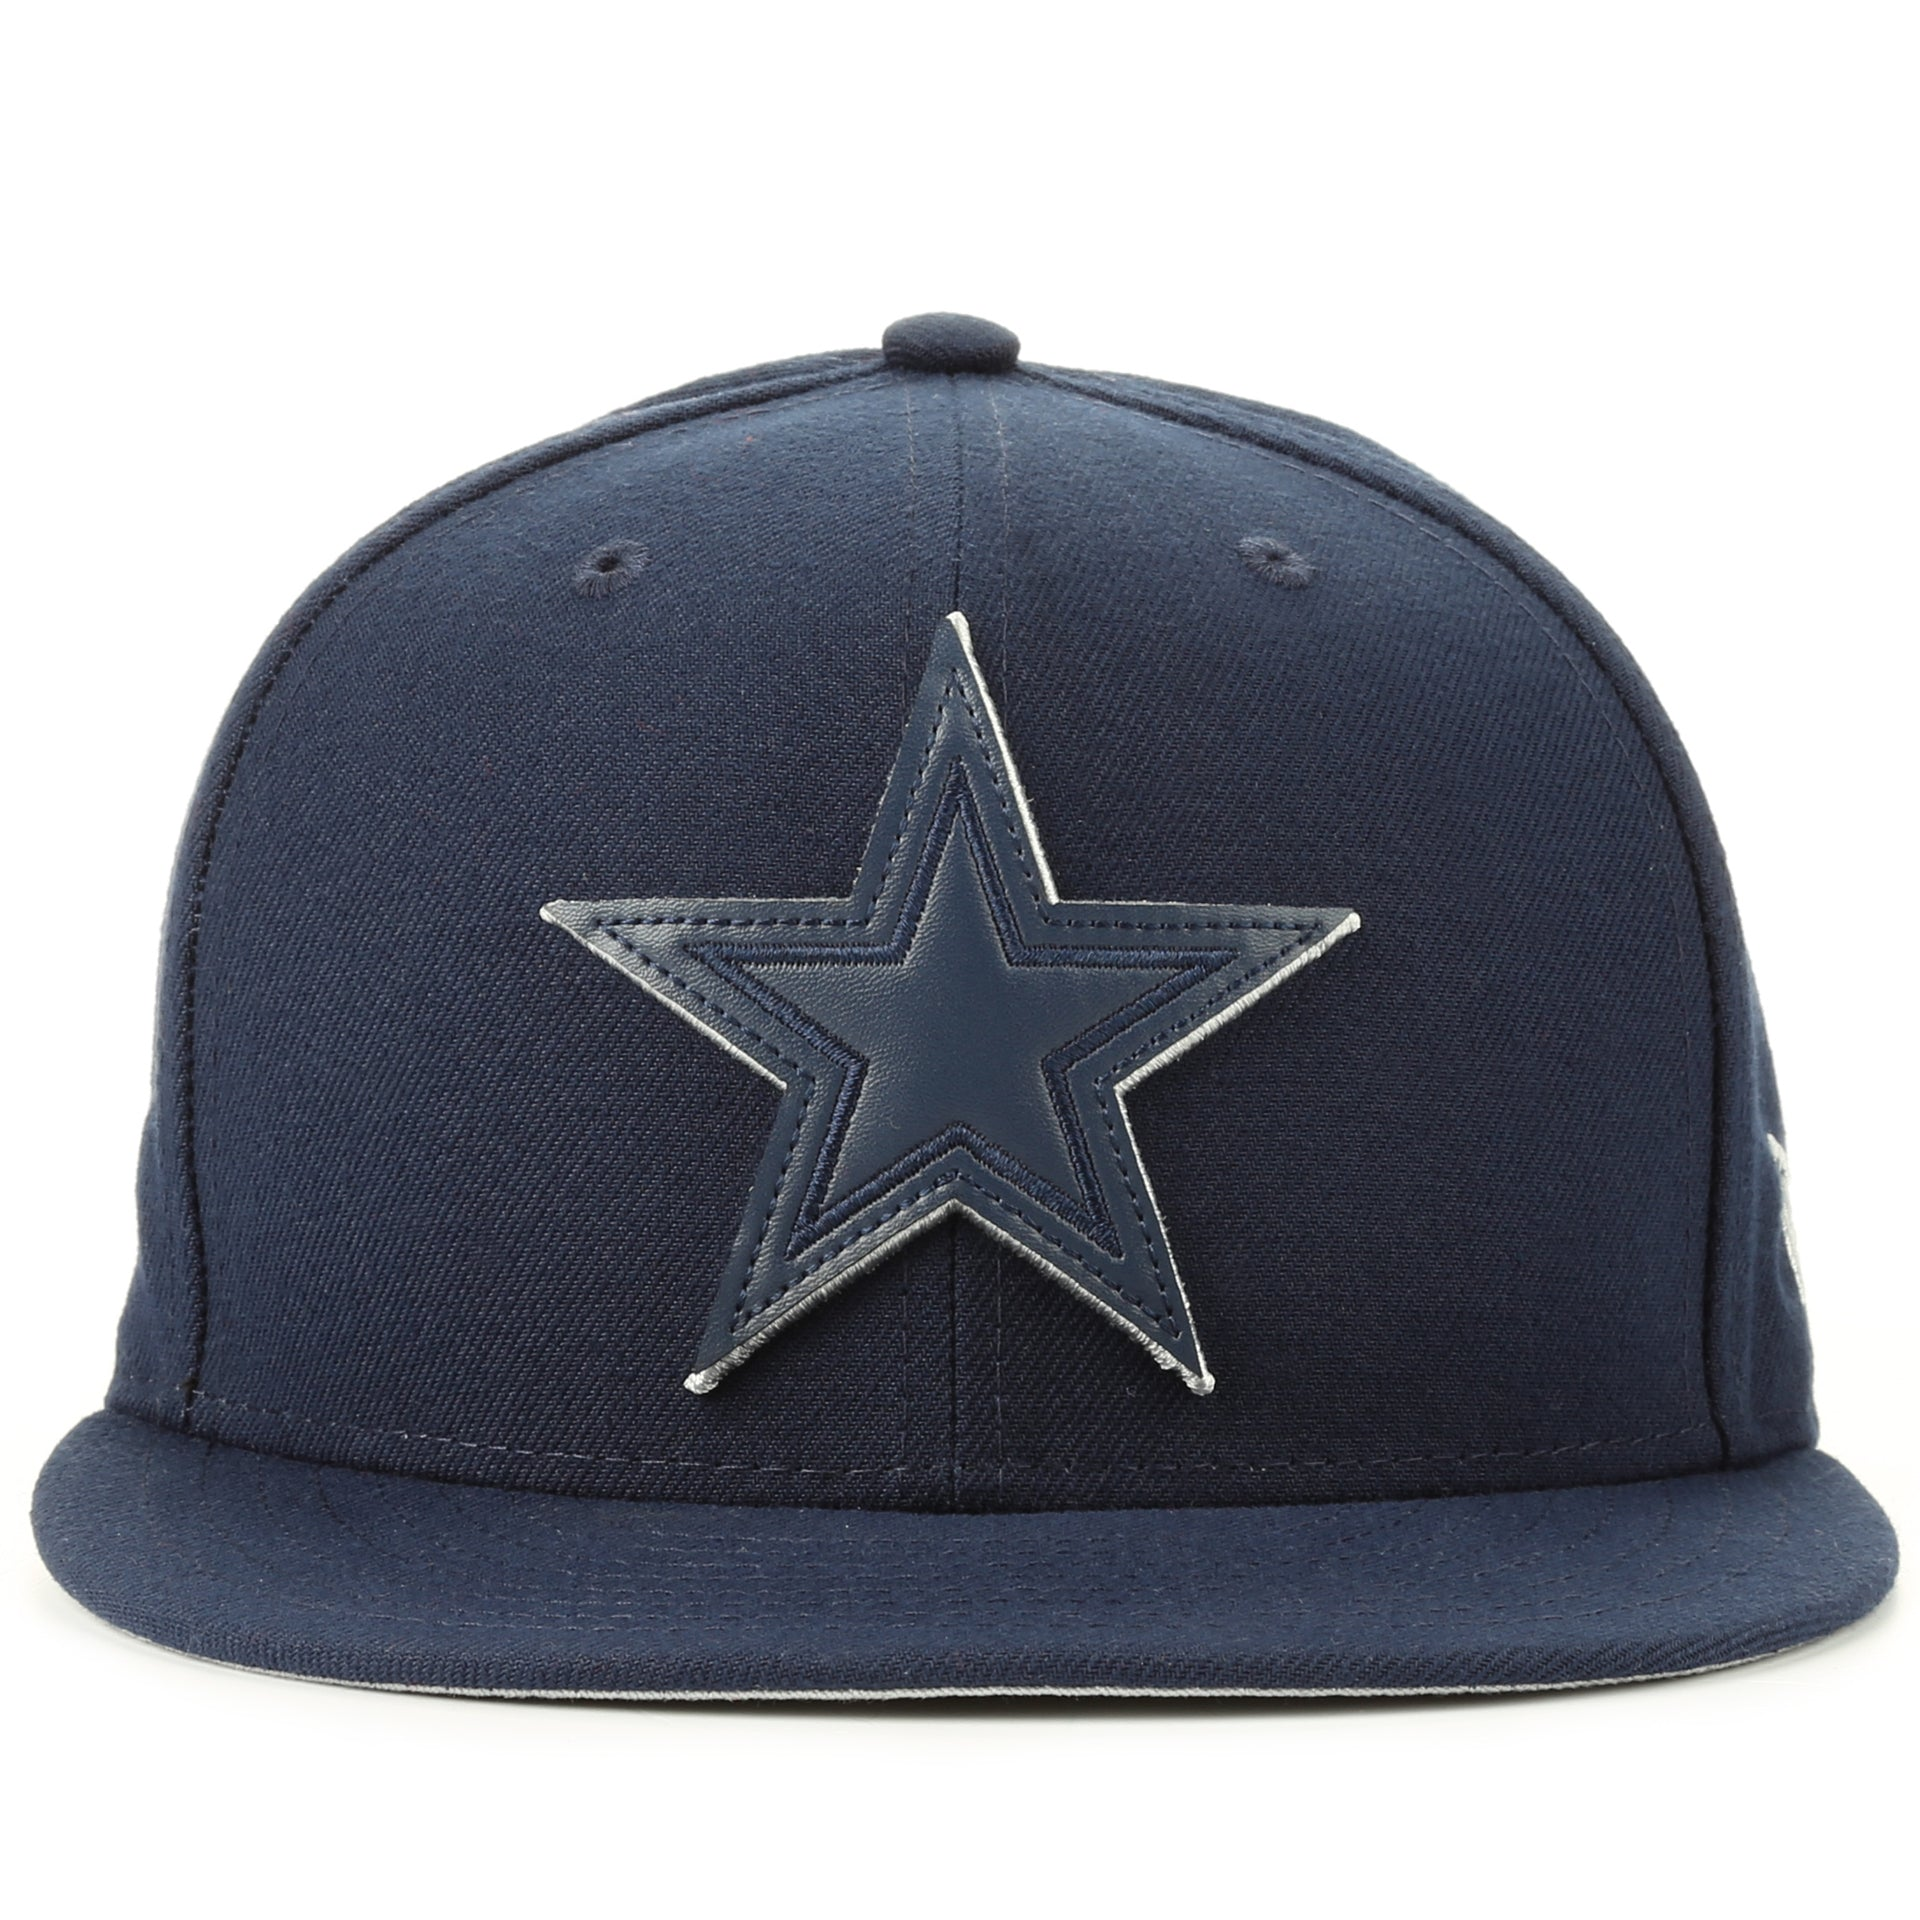 1de1840c9e6 New Era 59Fifty Leather Pop Fitted Cap - Dallas Cowboys Navy - New Star